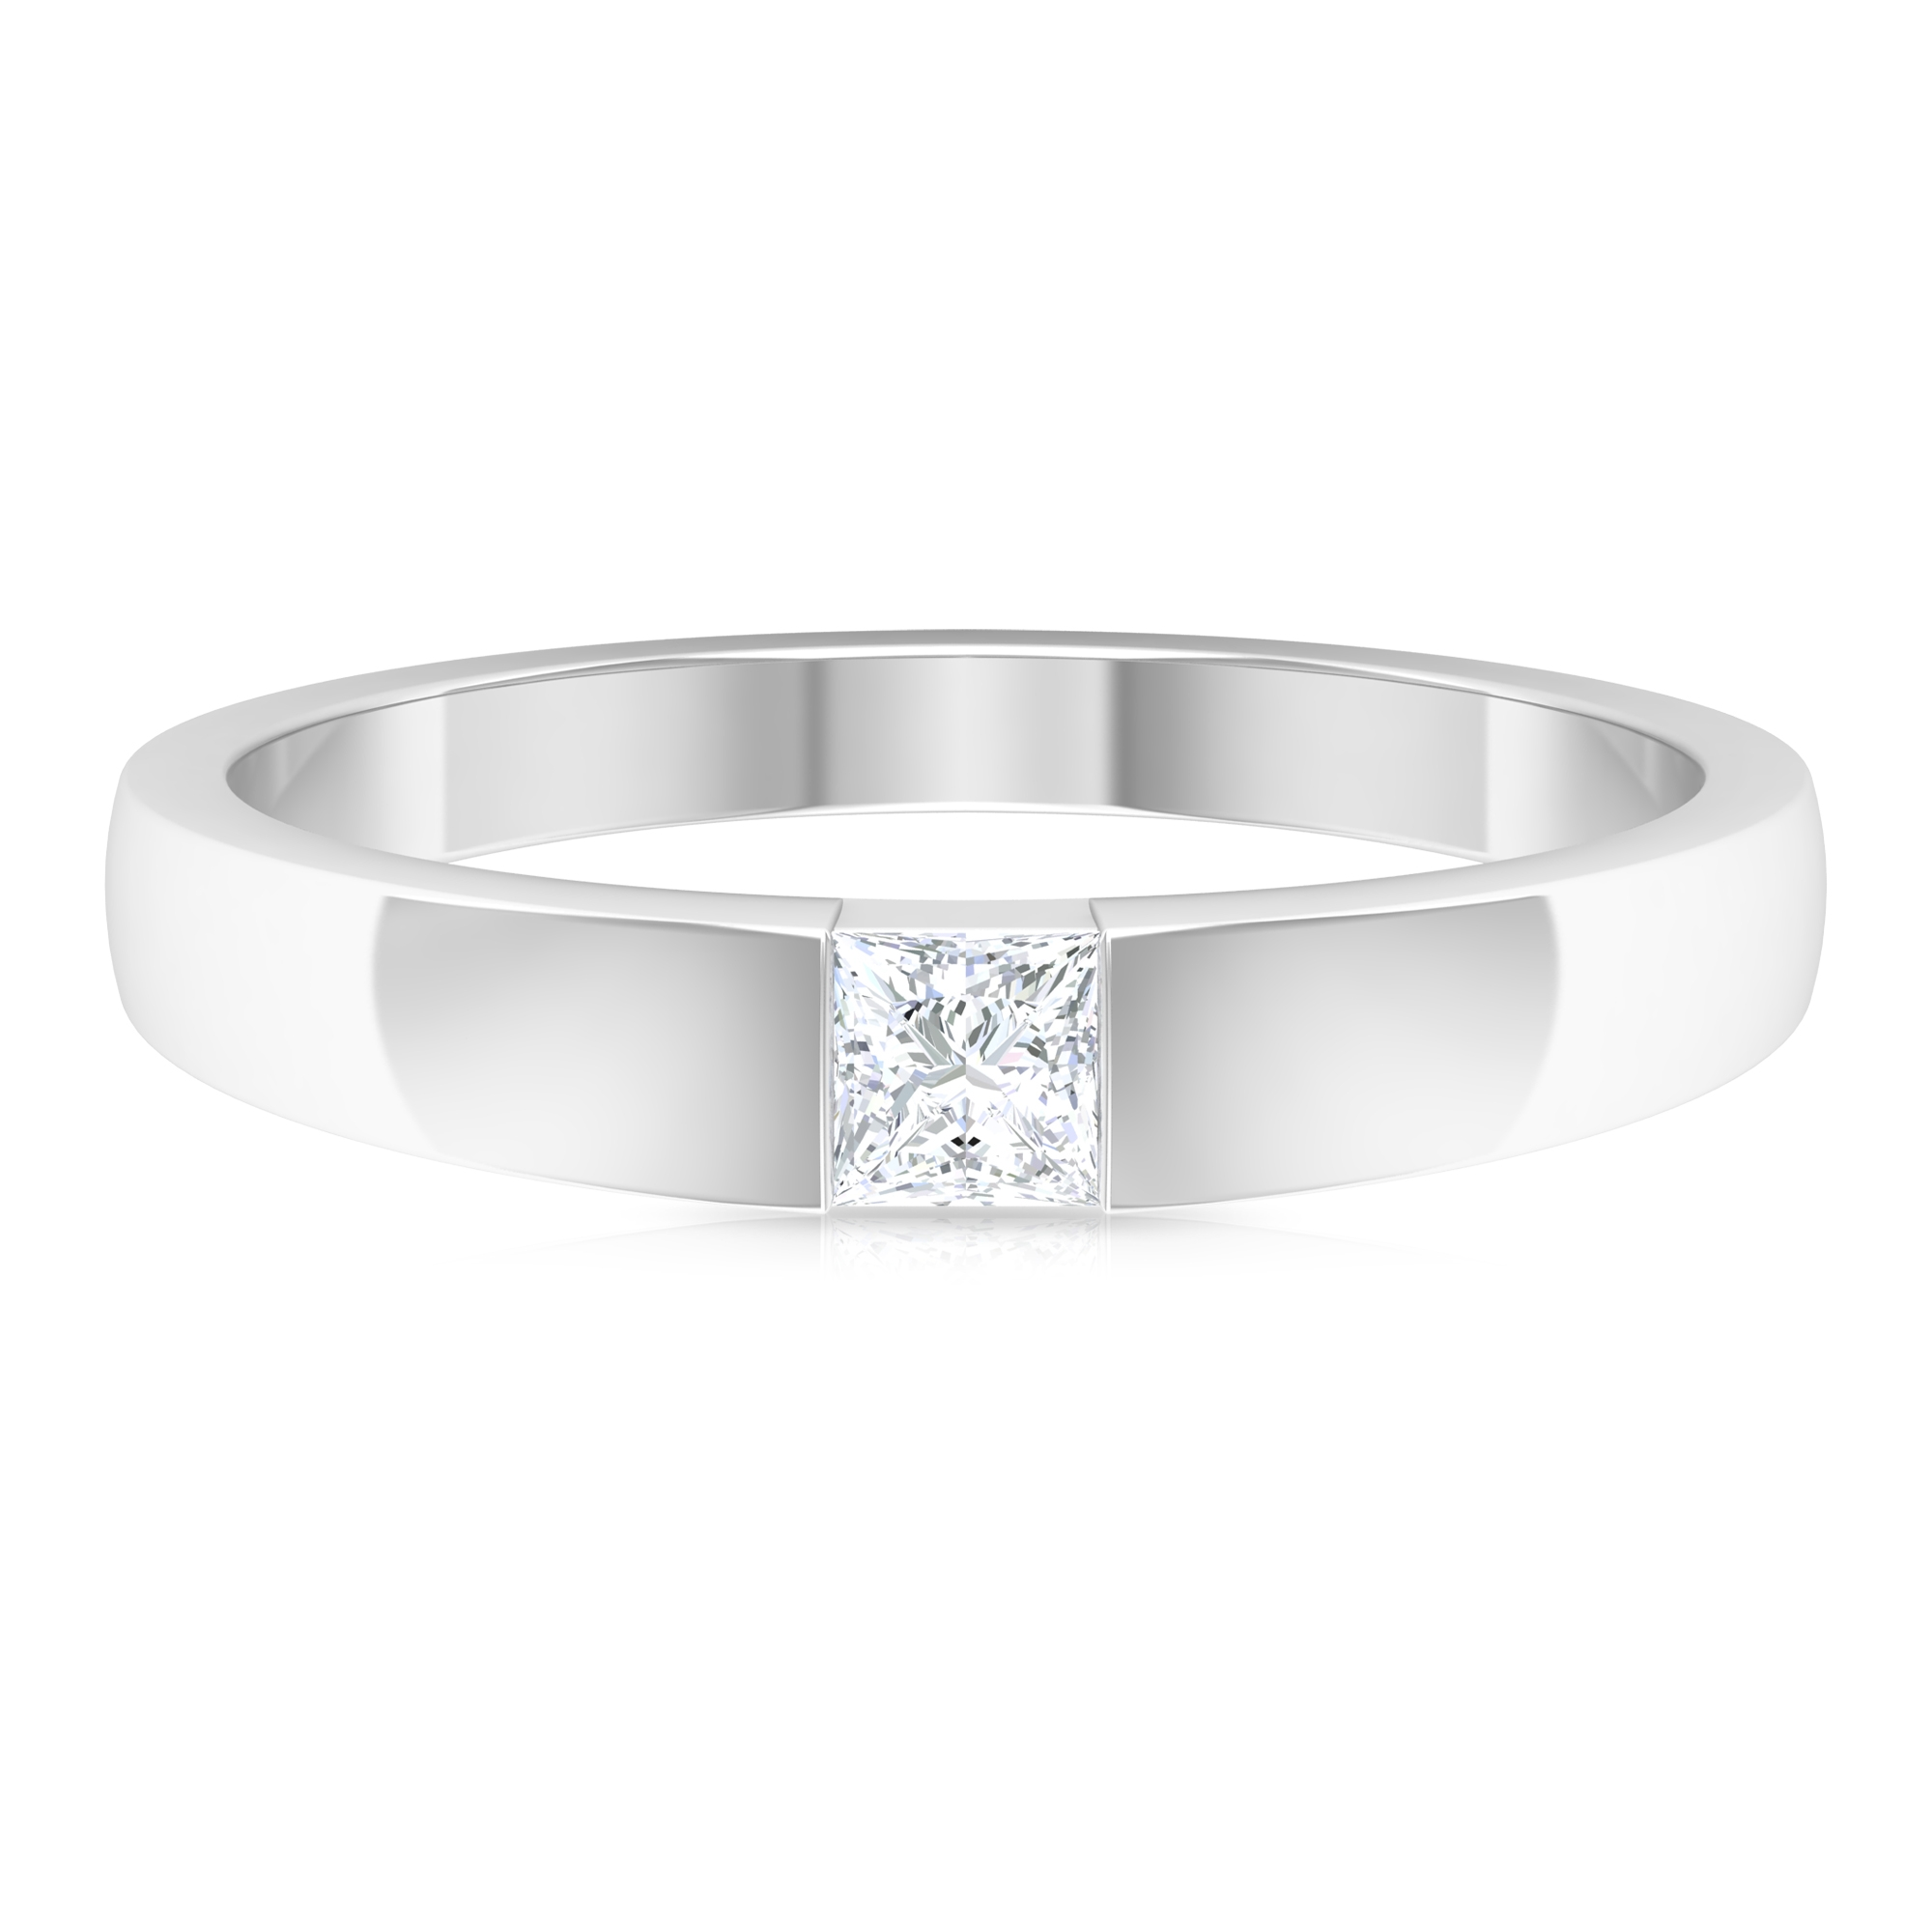 Princess Cut Diamond Solitaire Band Ring in Tension Mount Setting